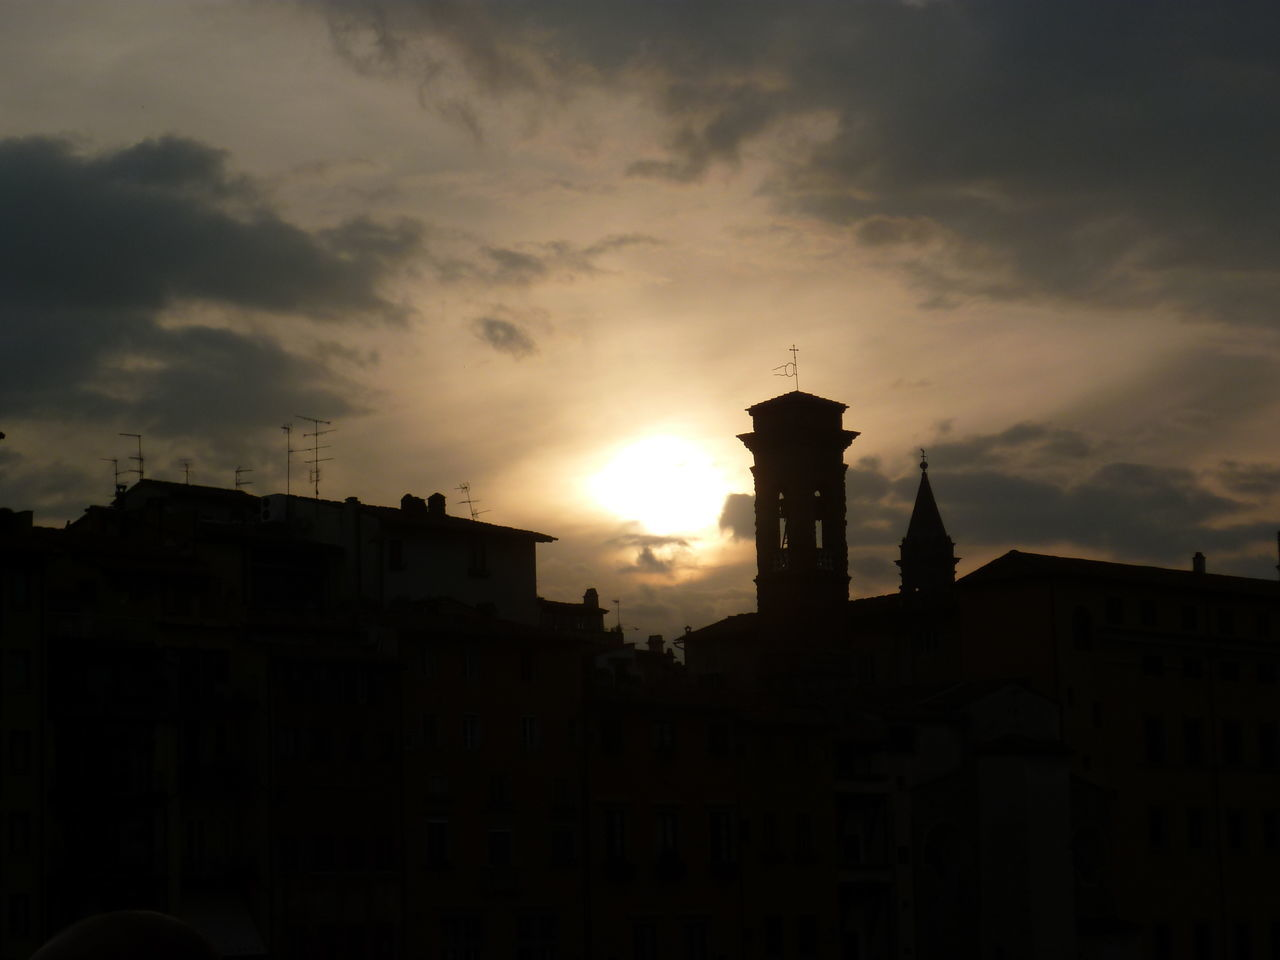 sunset, architecture, building exterior, built structure, sky, no people, sun, silhouette, cloud - sky, outdoors, city, day